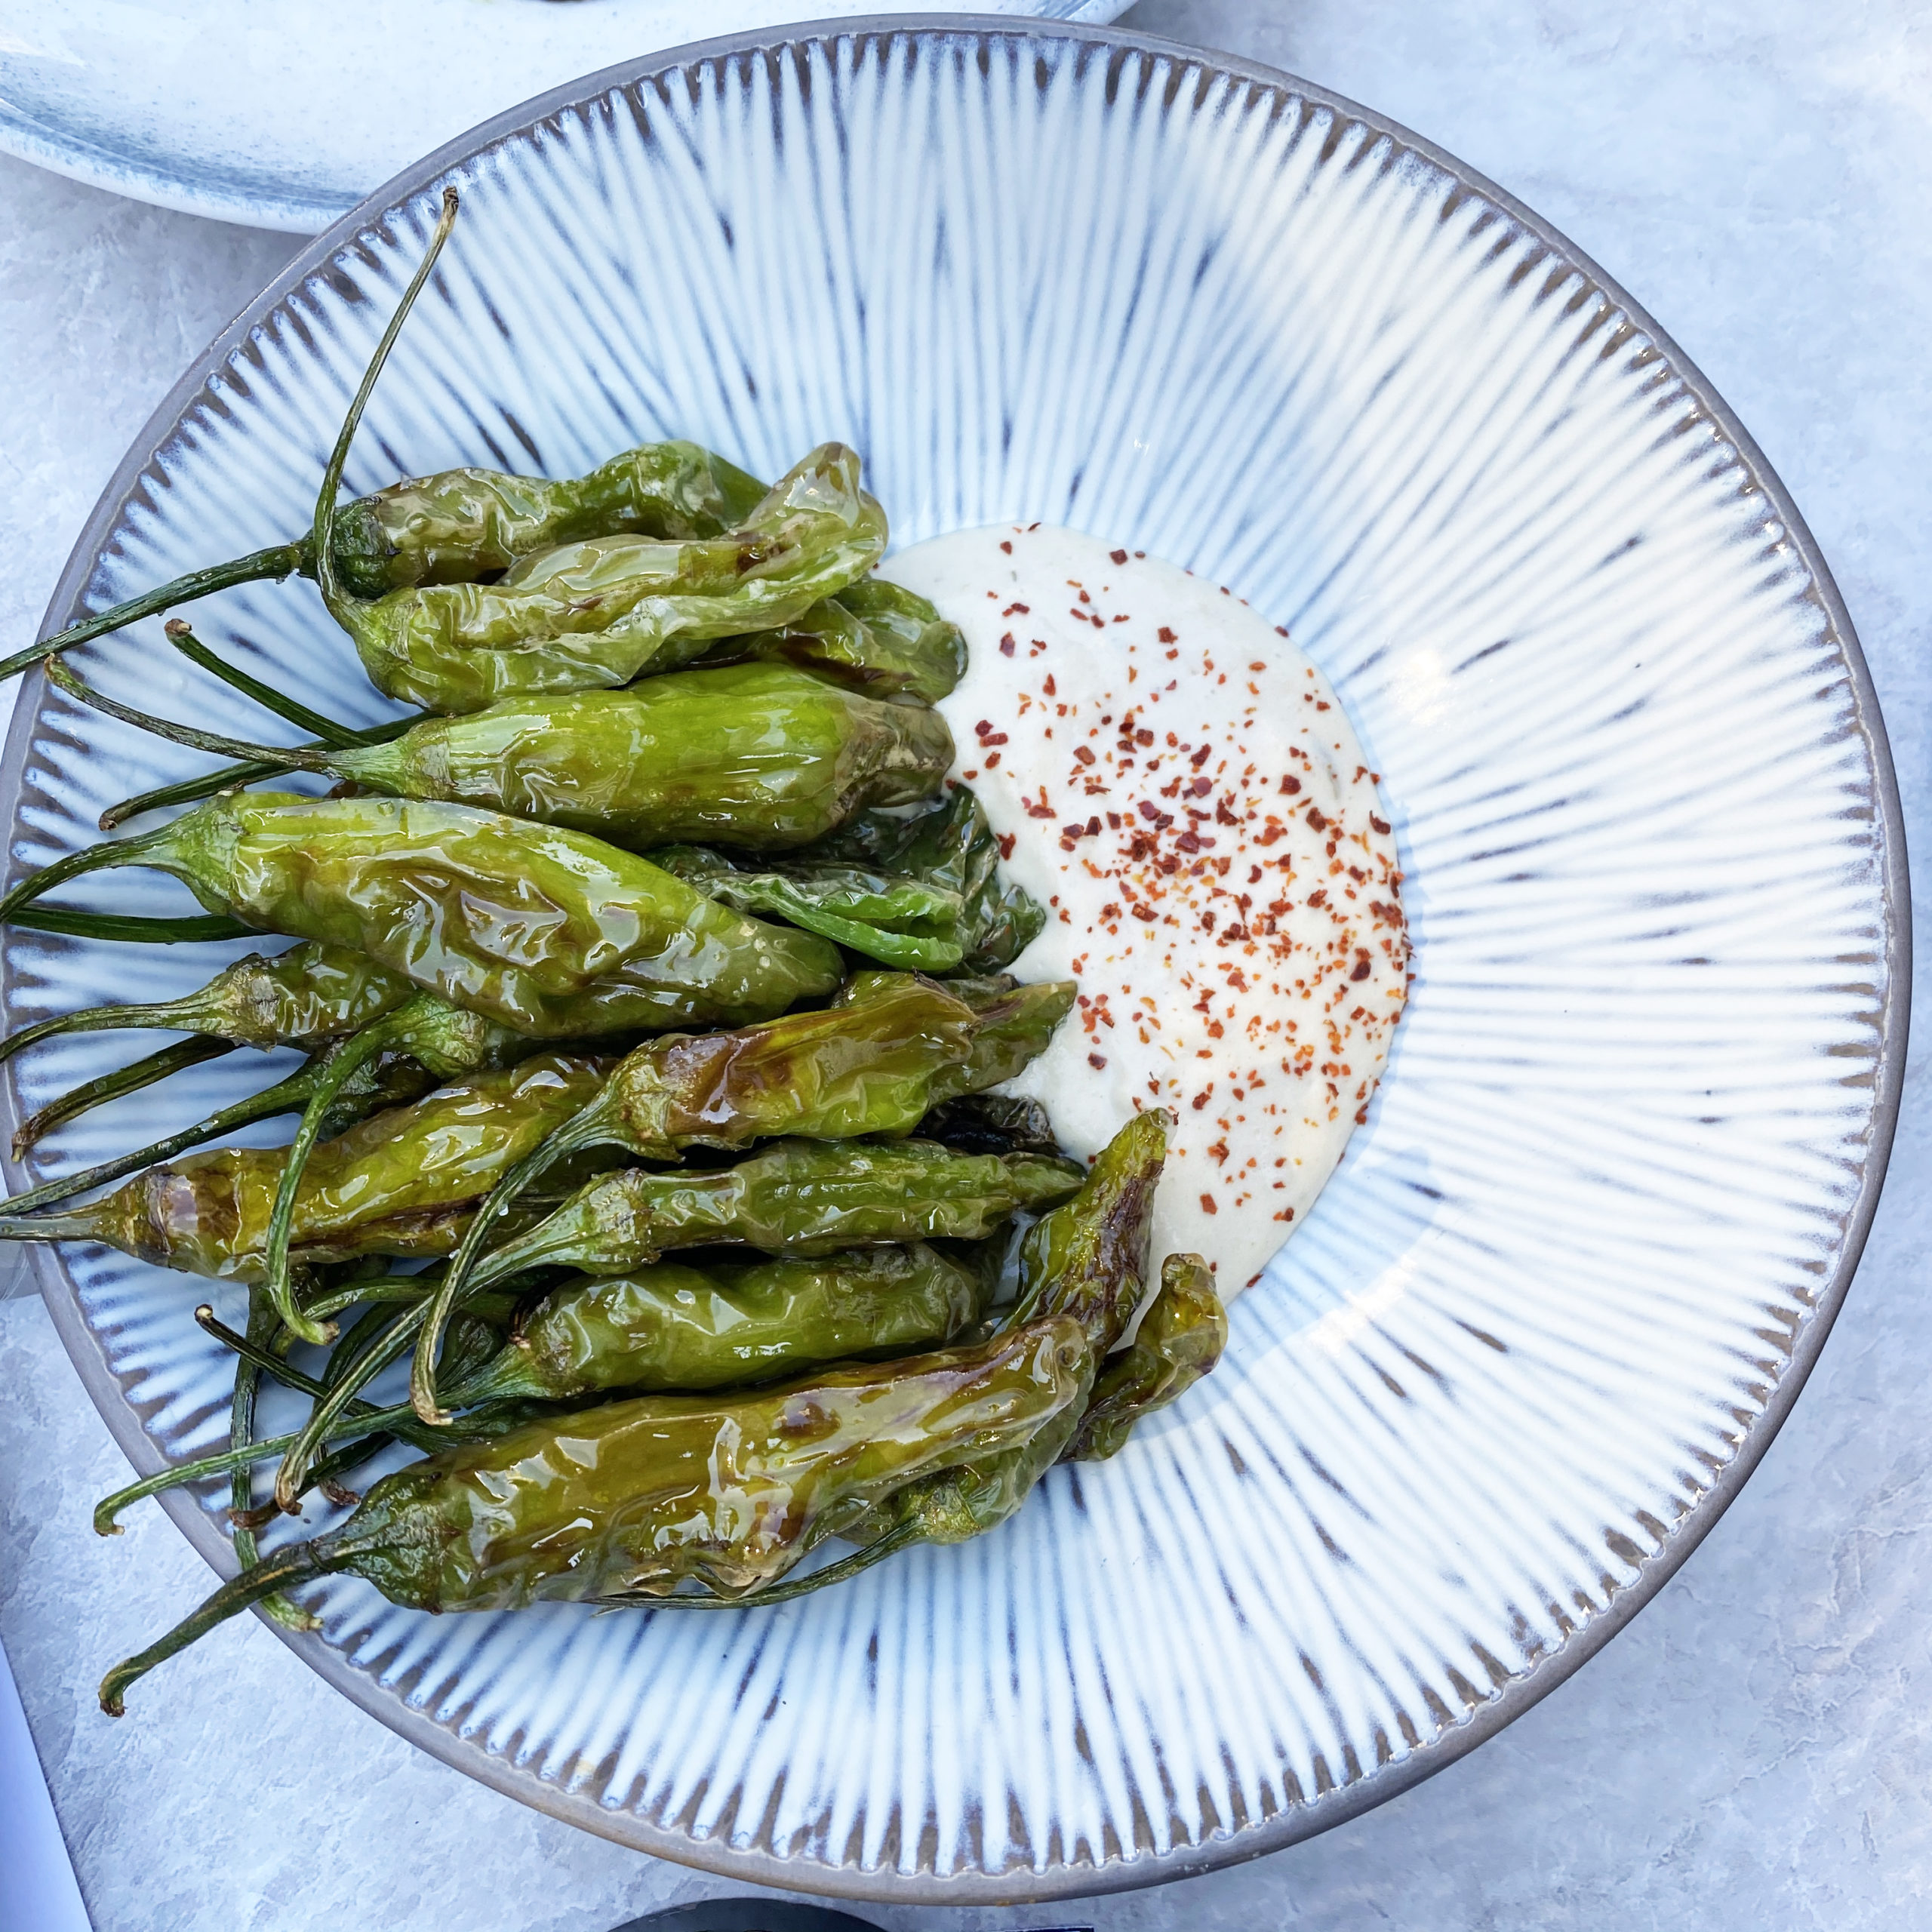 FRIED SHISHITO PEPPERS - Forkitecture Feature - The Vault Garden